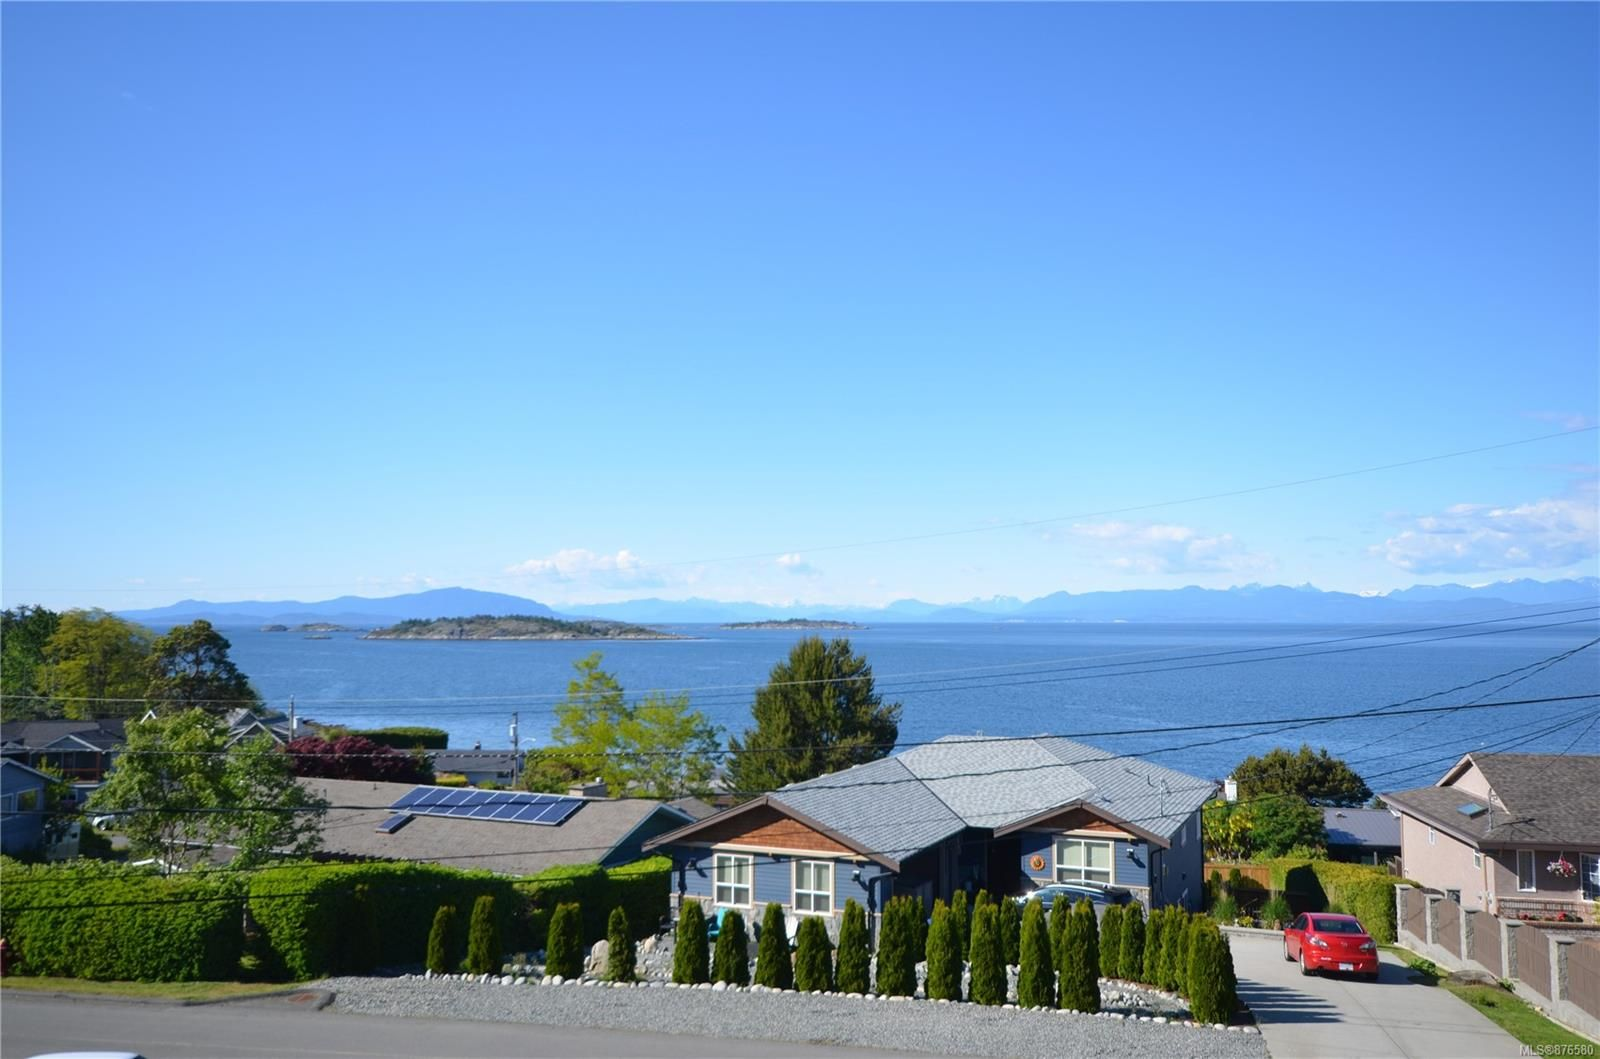 Main Photo: 7196 Lancrest Terr in : Na Lower Lantzville House for sale (Nanaimo)  : MLS®# 876580